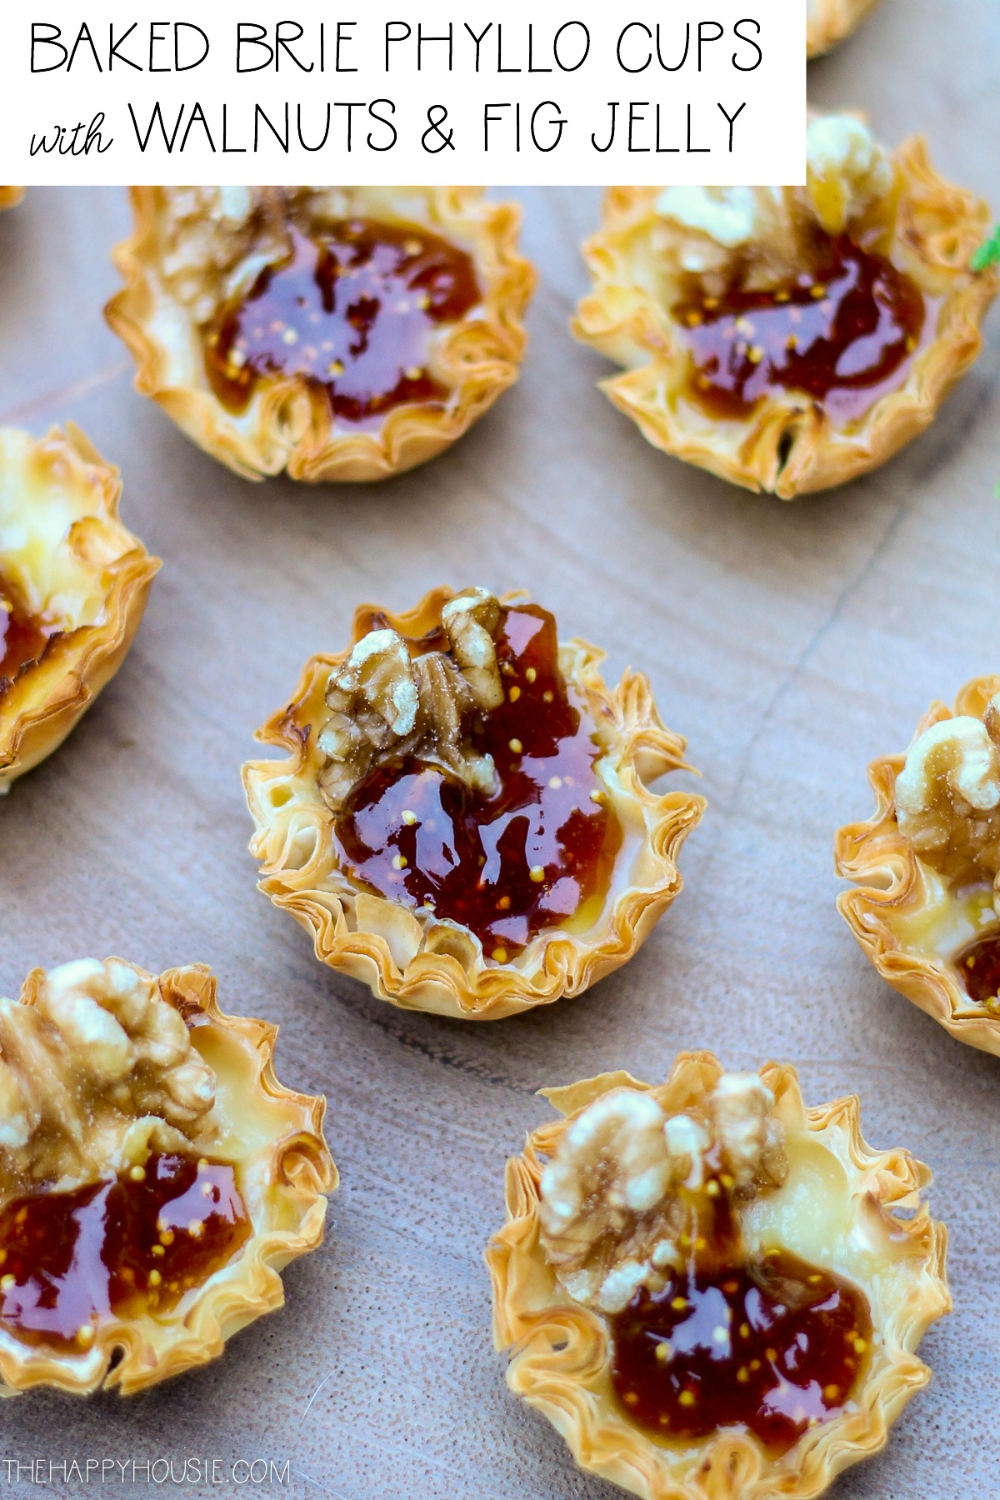 Baked Brie Phyllo Cups with Walnuts & Fig Jelly | The Happy Housie